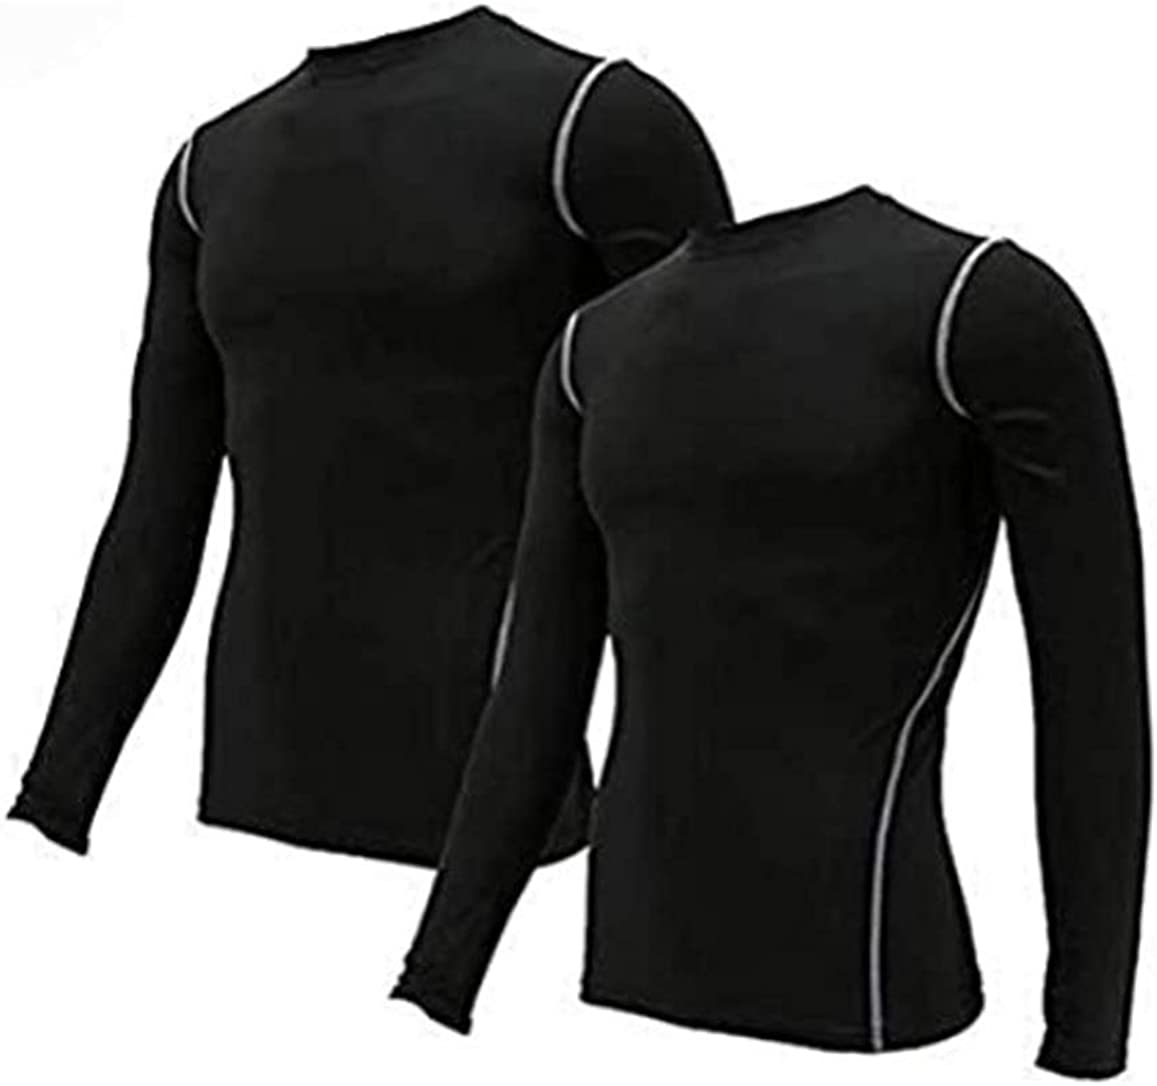 Minghe Men's Compression Shirt Long Sleeve Running Pullover Shirt Athletic Base Layer Workout Tops